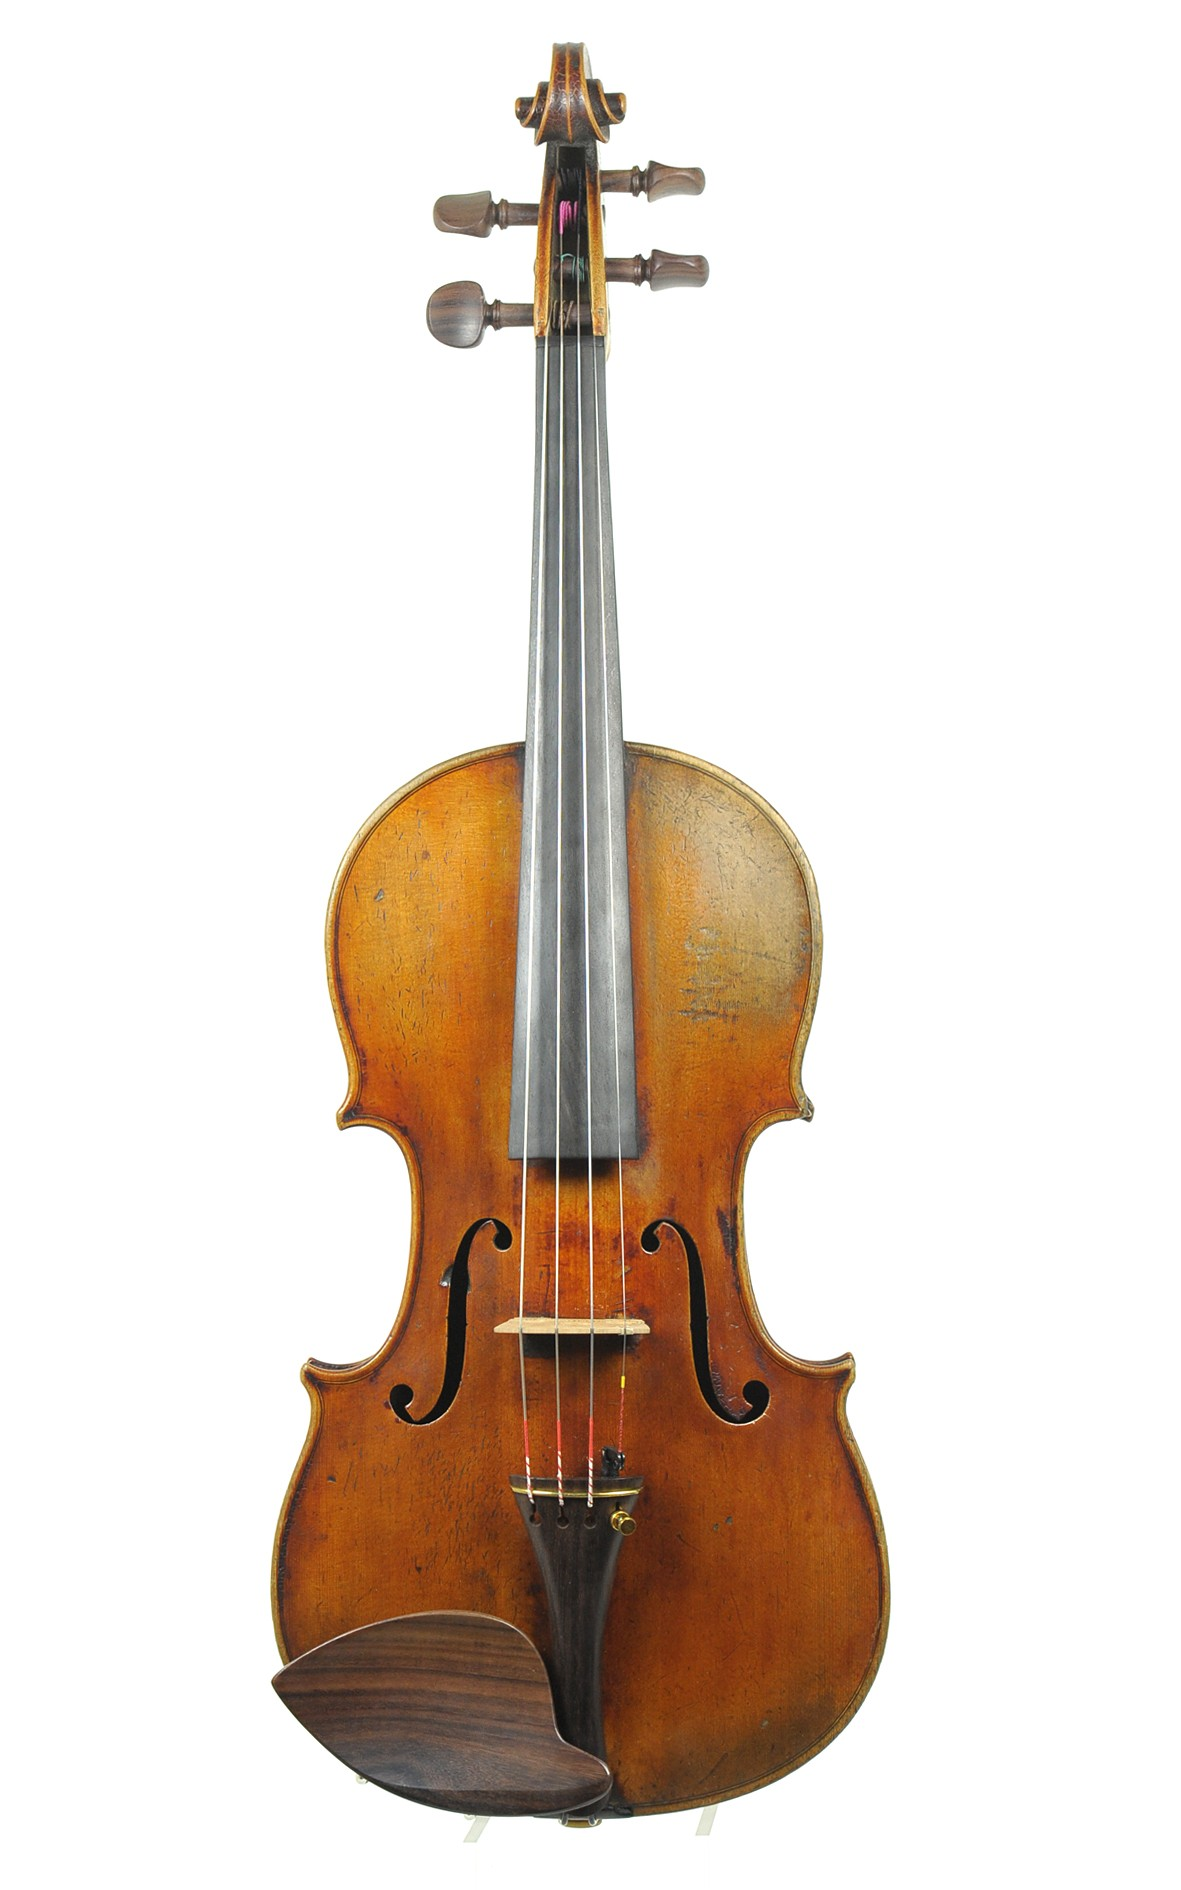 19th century, fine Bavarian violin, copy of Niccolo Amati - violin top